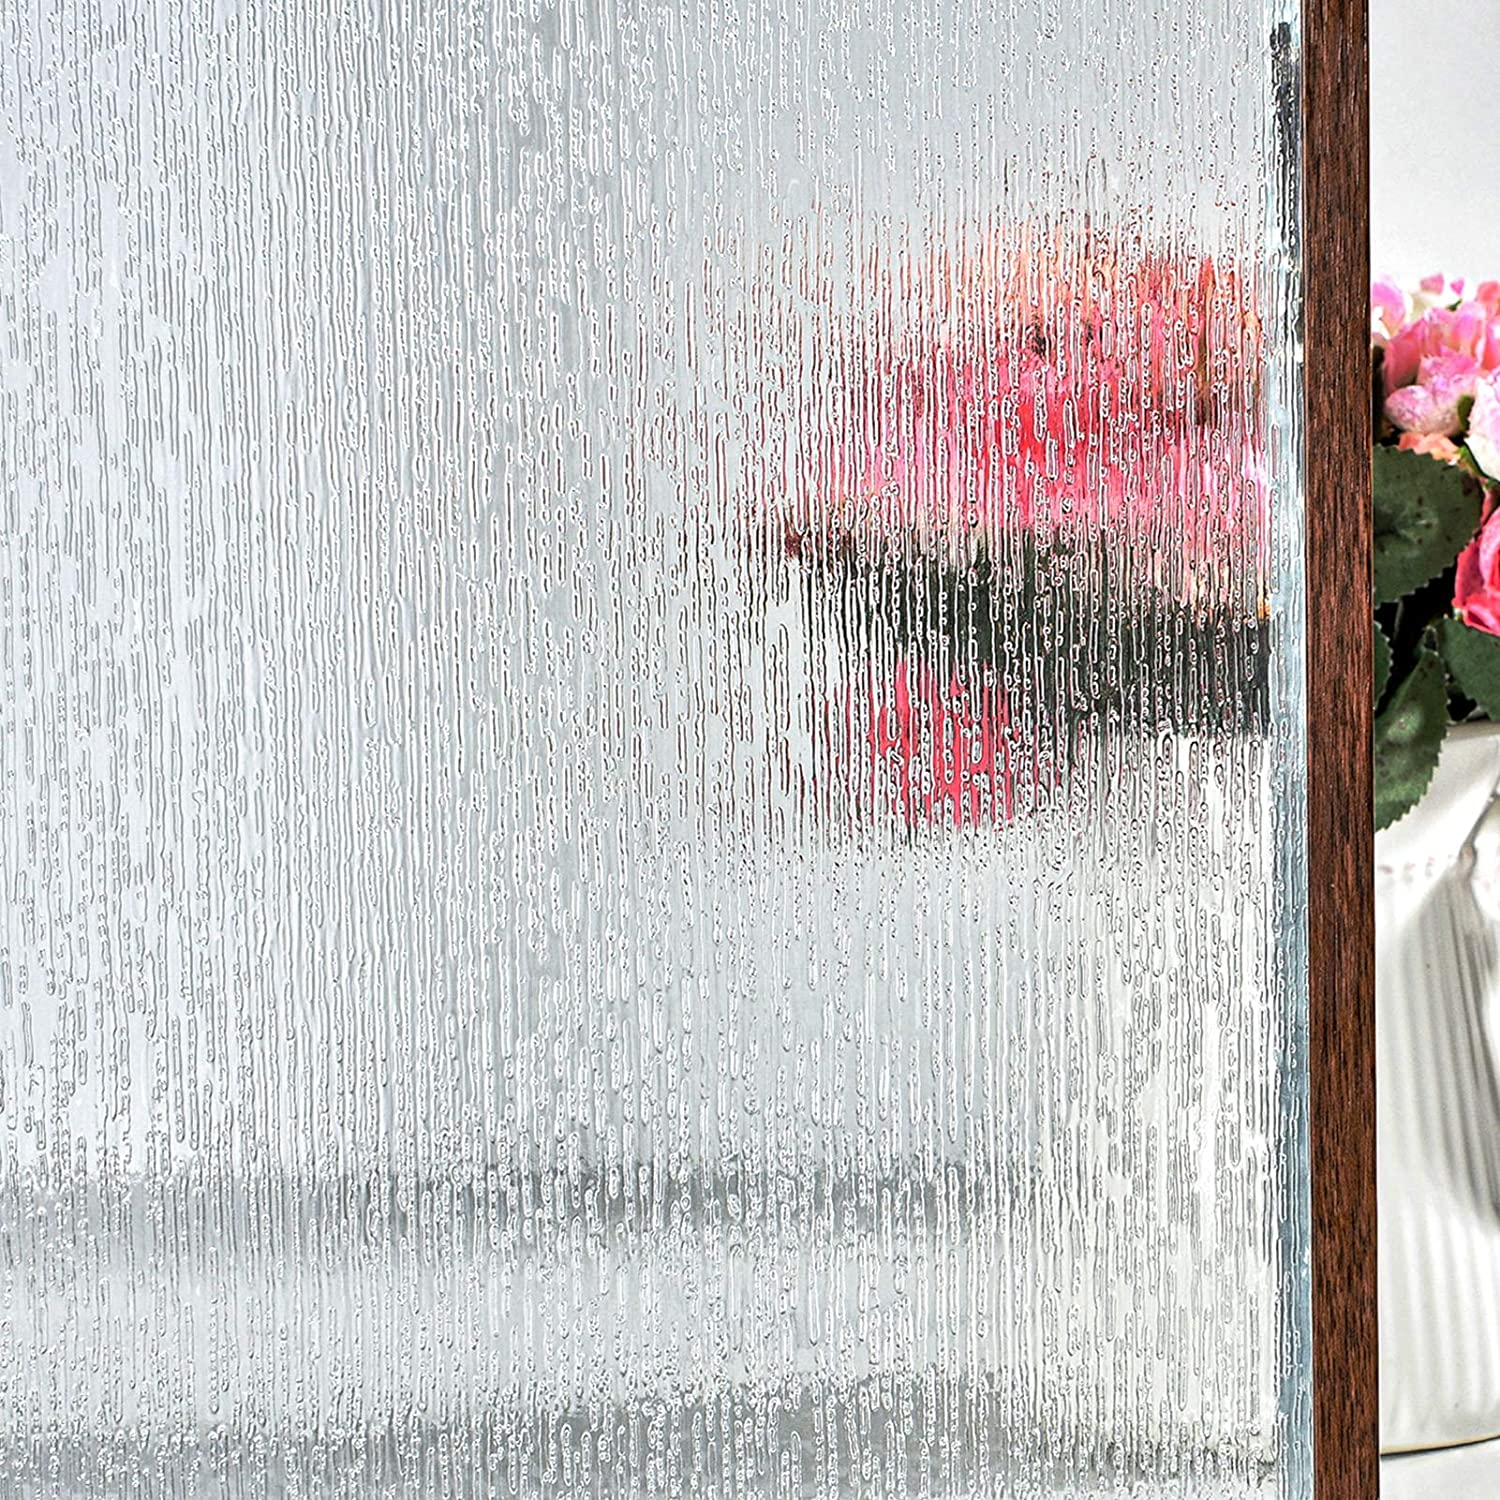 FEOMOS Rain Glass Window Film - Static Window Clings Privacy Window Decals Easy Removal UV Blocking for Glass (35.4 x 78.7 inches)